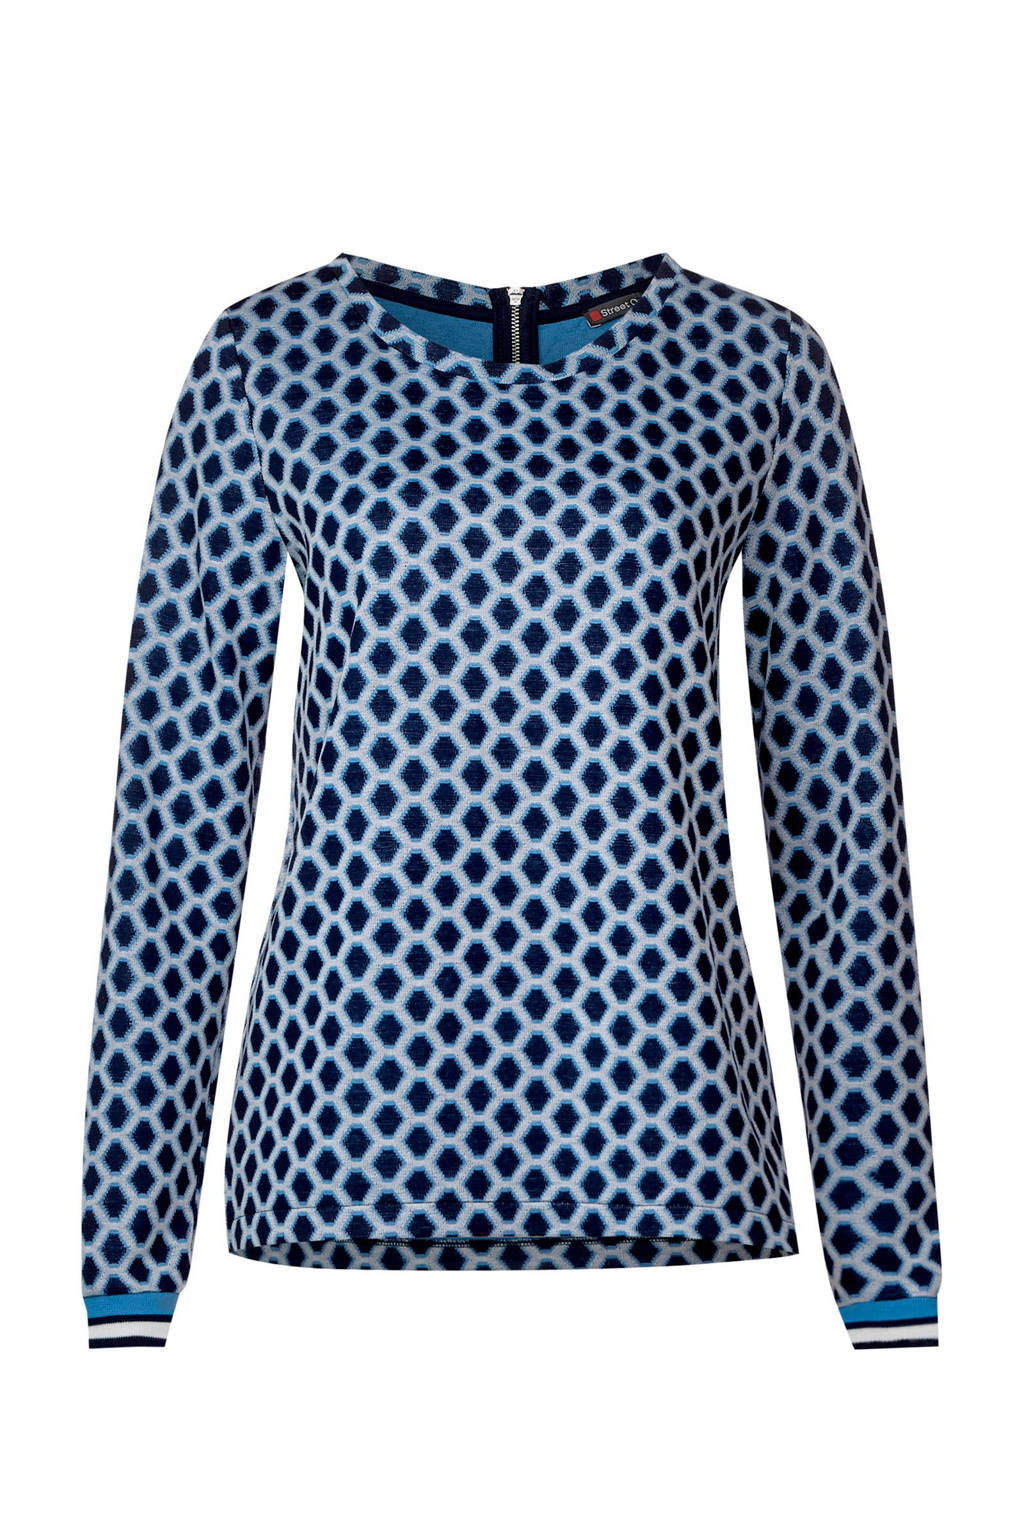 Street One shirt met print Polly, Blauw/wit